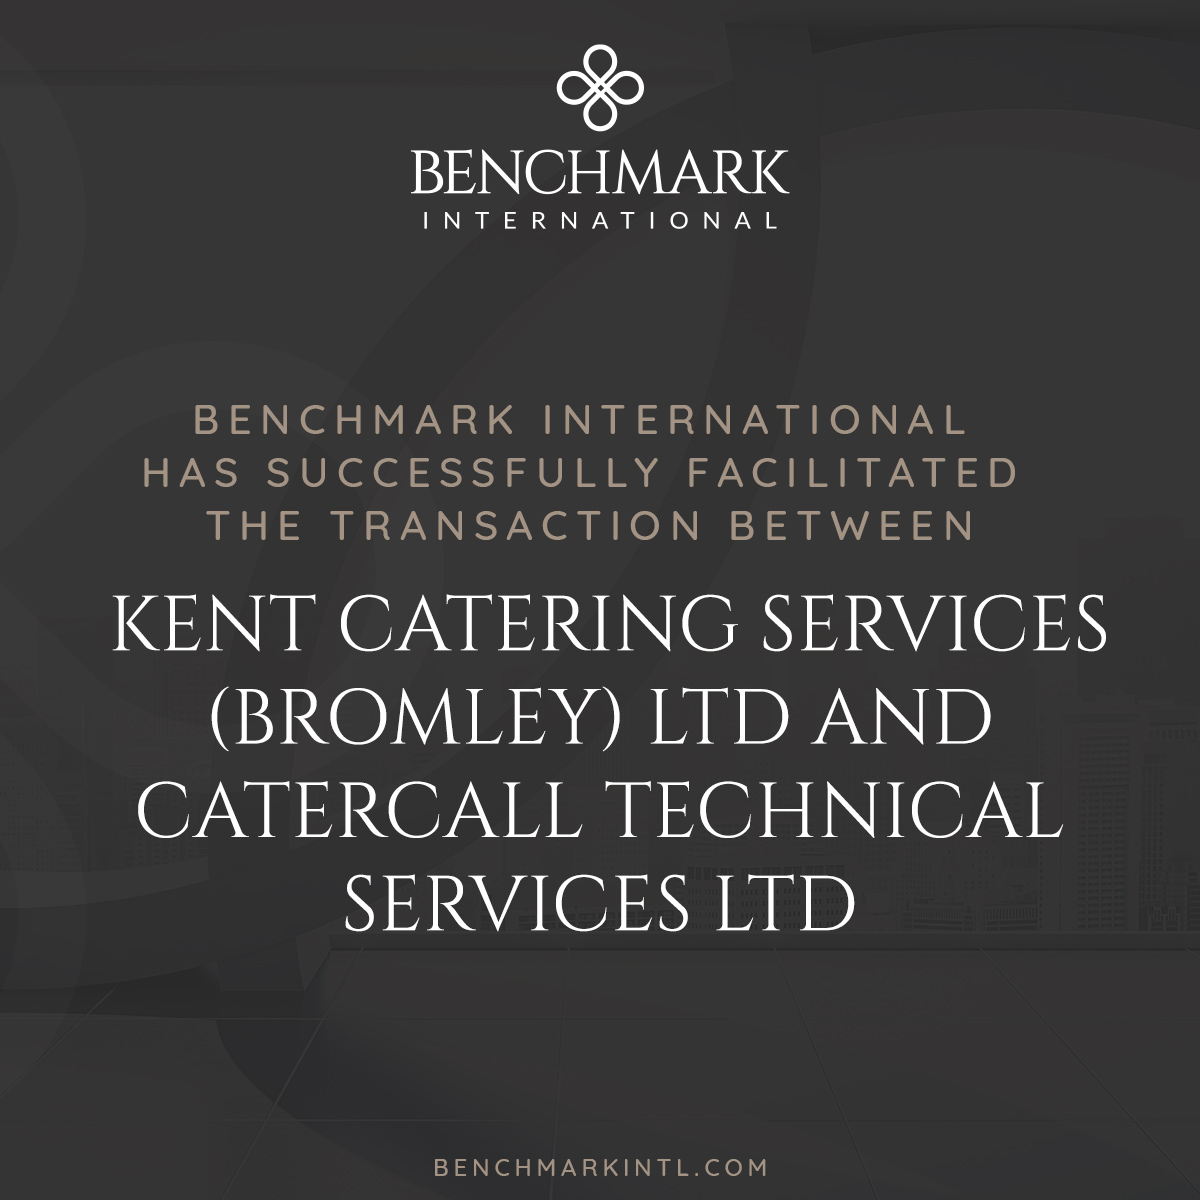 Acquisition KCSB Catercall Technical Services